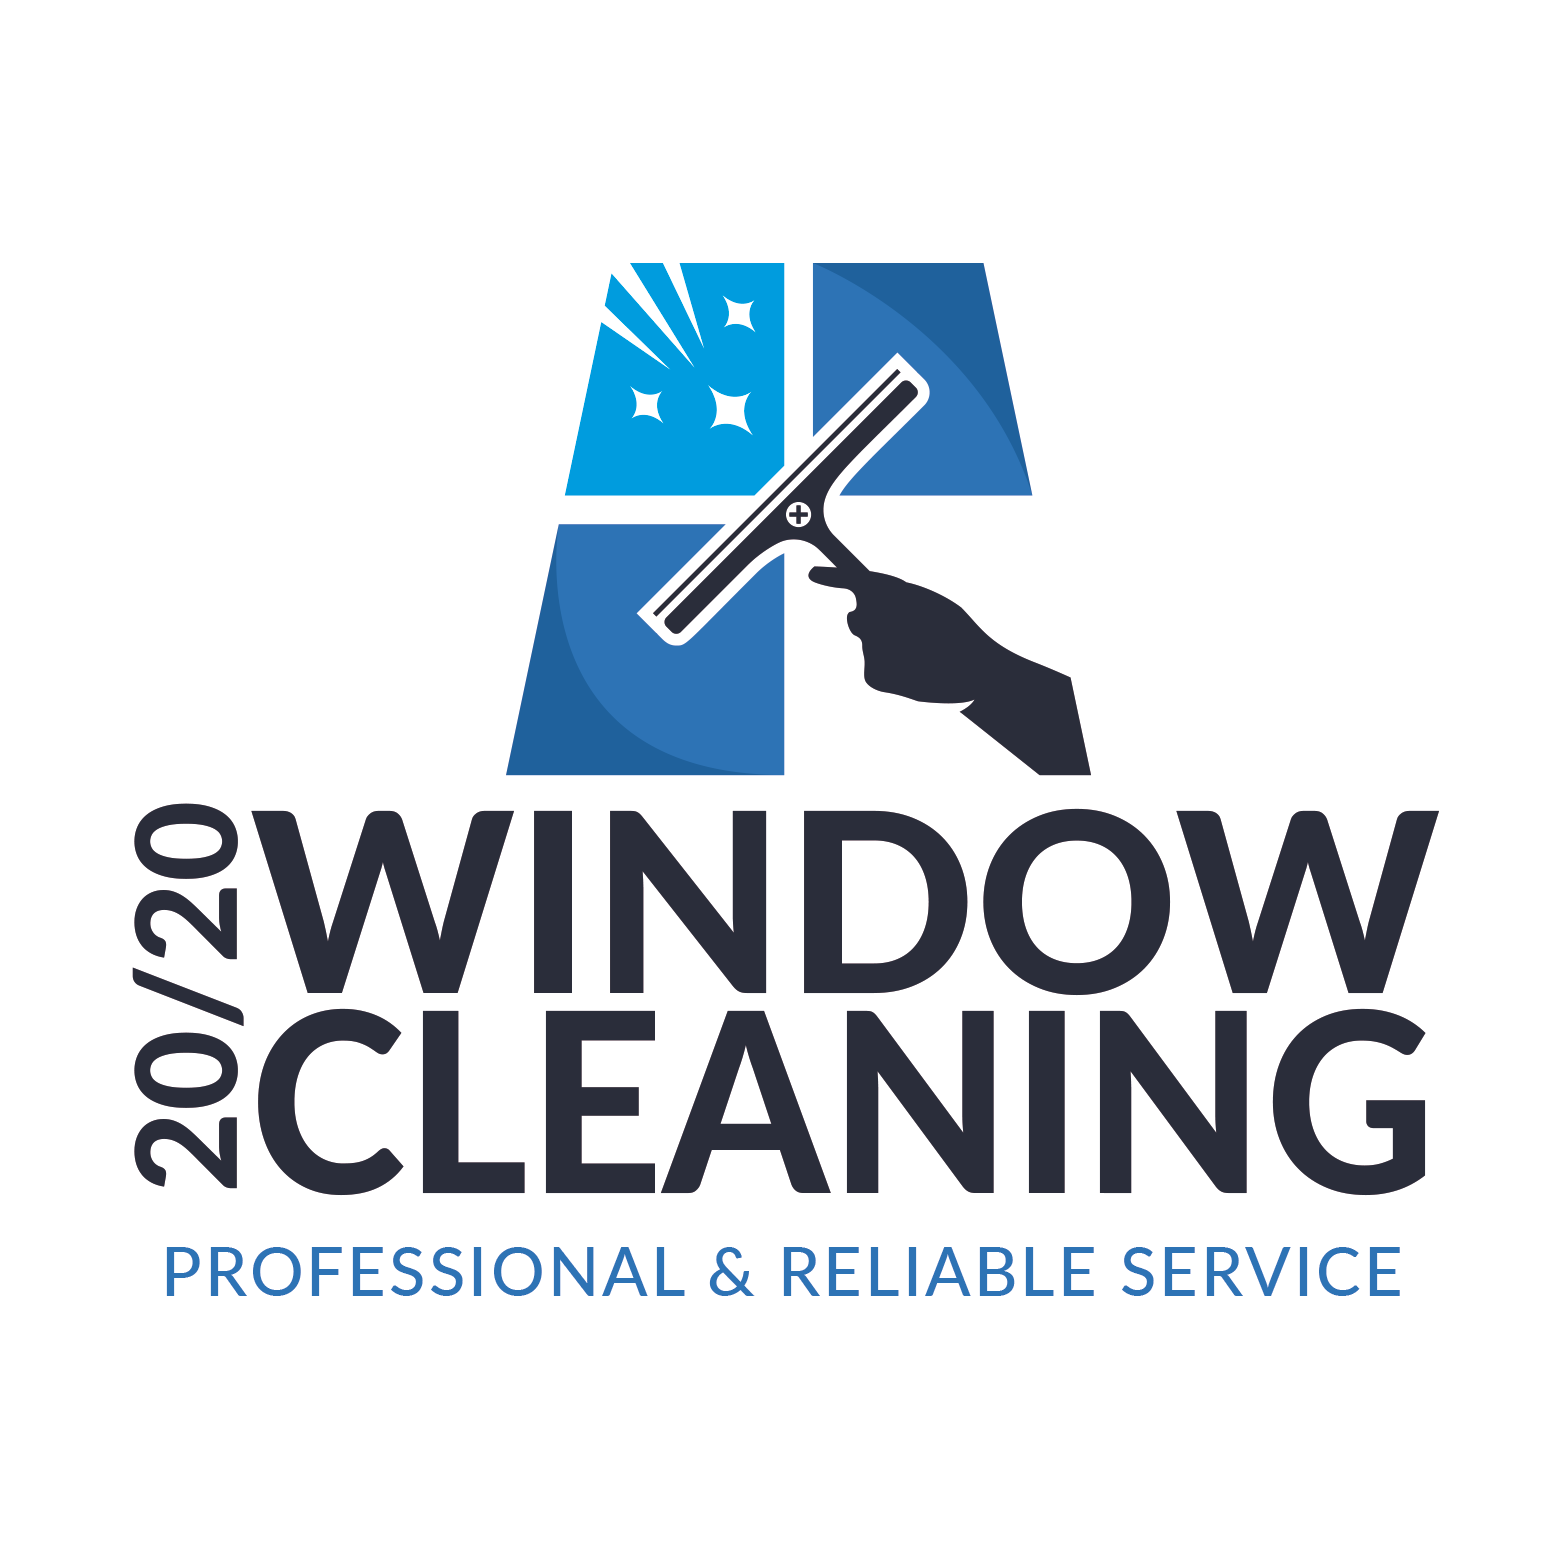 20/20 Window Cleaning Teesside